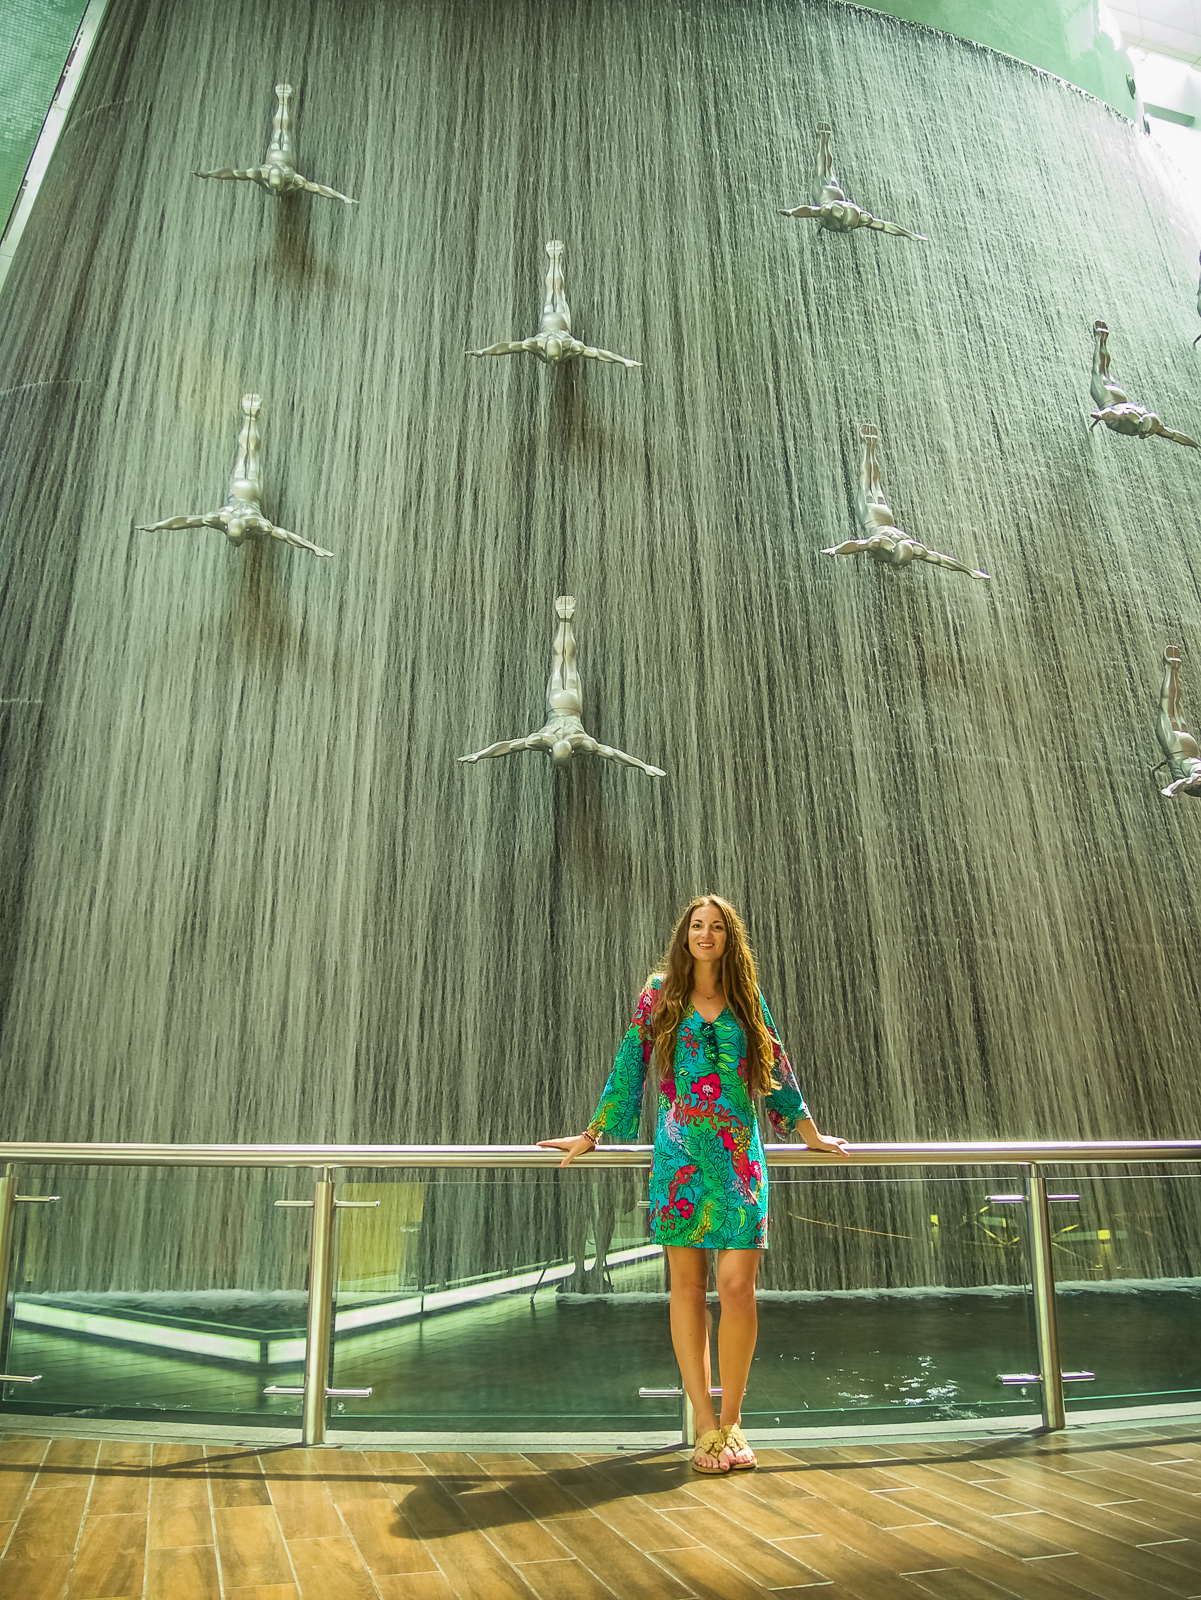 Waterfall in the Dubai Mall